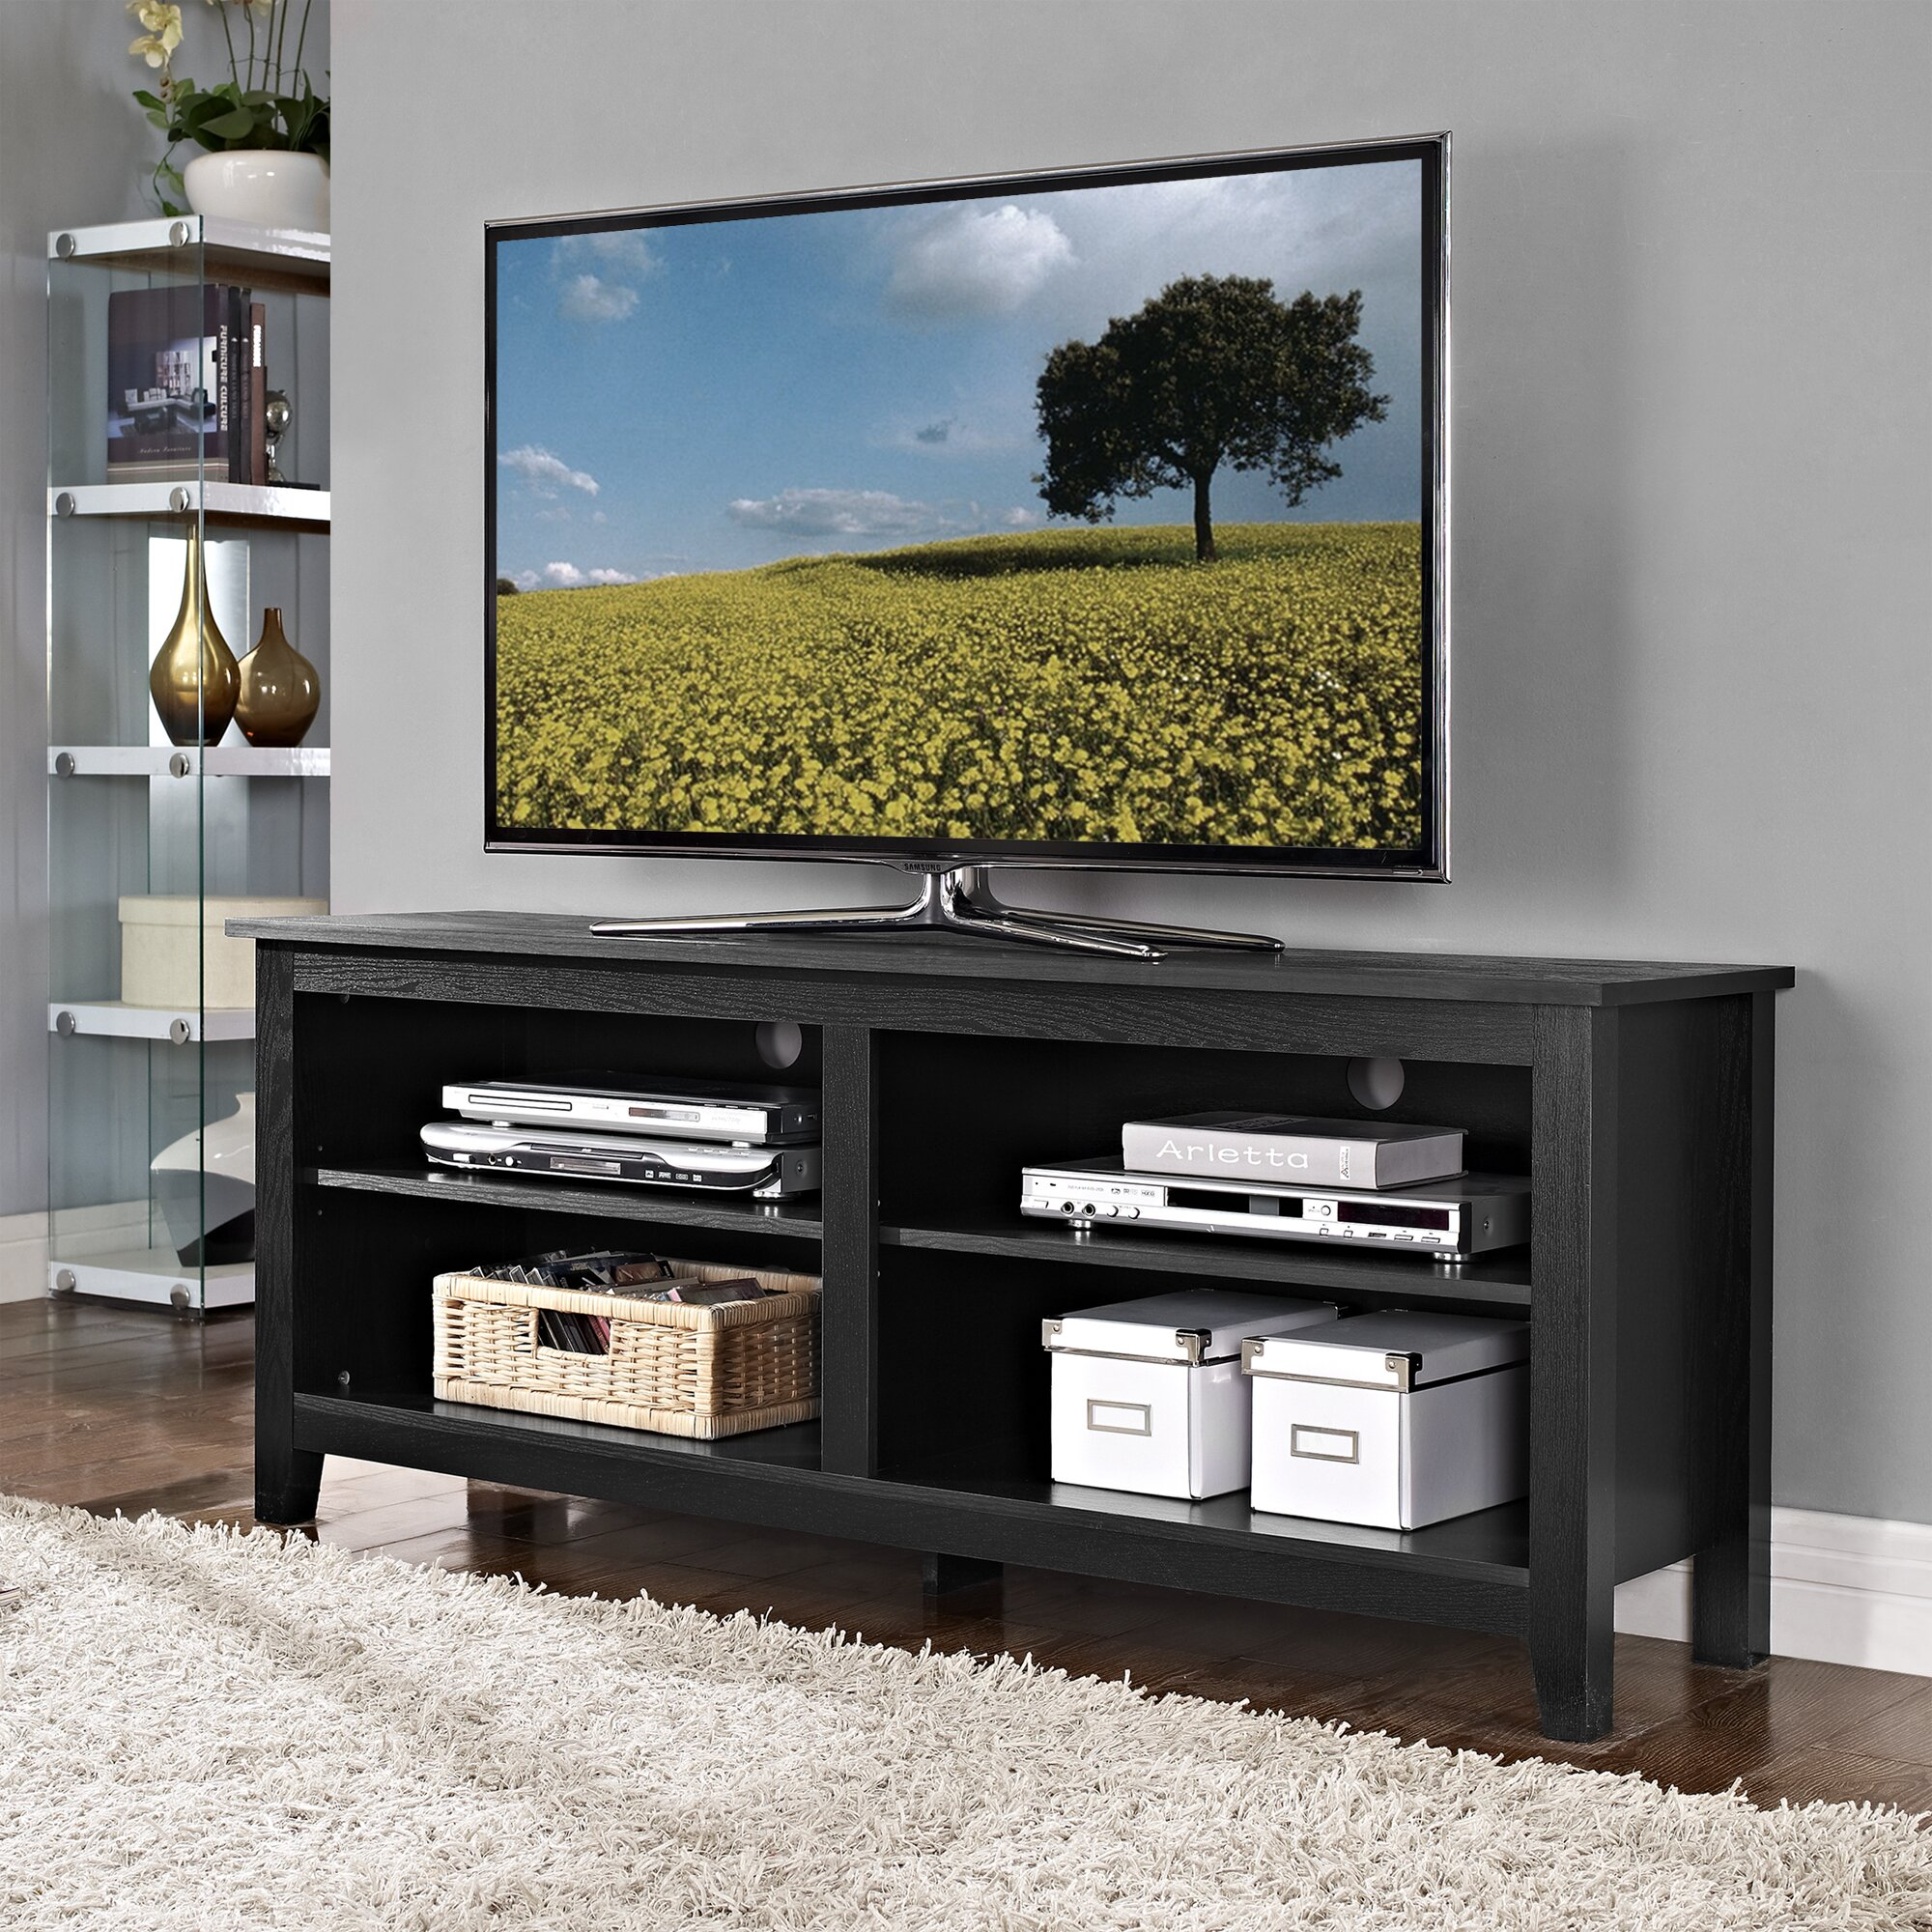 Beachcrest home sunbury tv stand reviews wayfair Home furniture tv stands